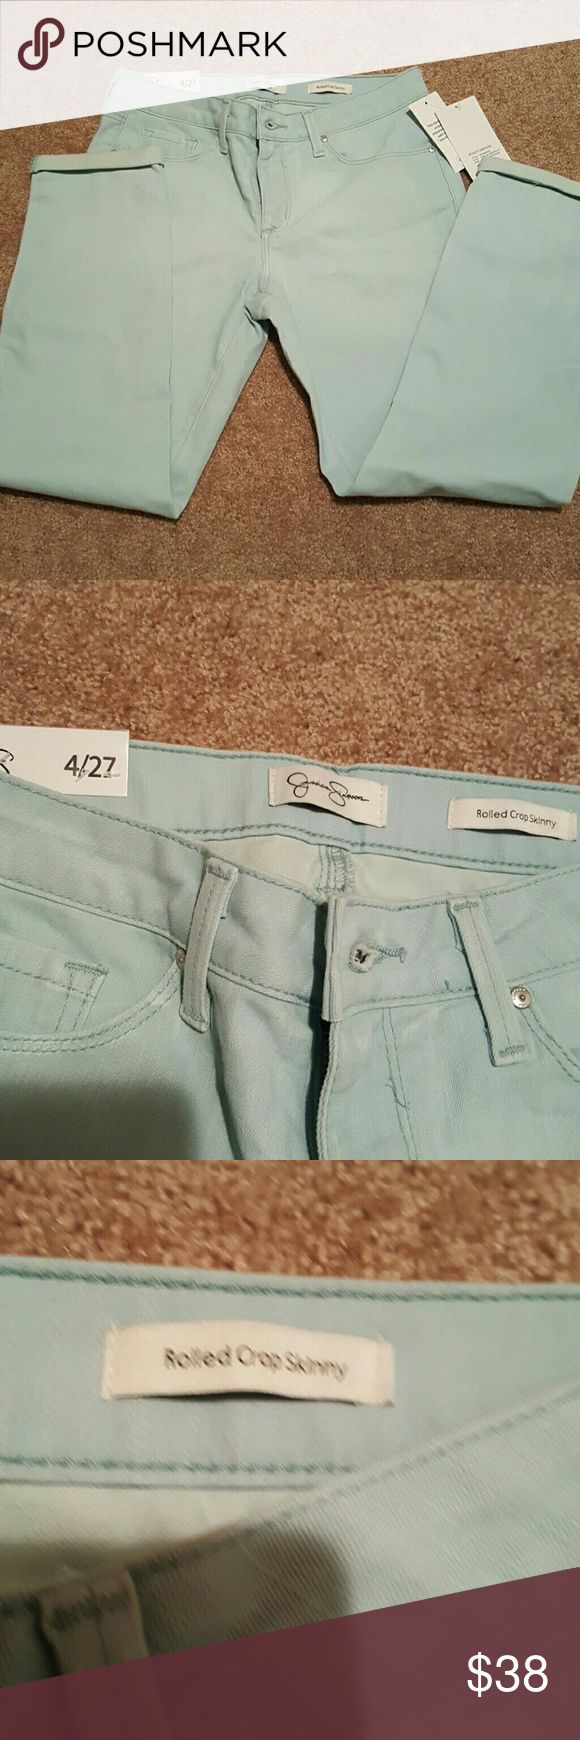 Rolled crop skinny jeans Jessica Simpson pale blue rolled crop skinny jeans. Very spring and summer ready. Had a lil give. New with tags. Jessica Simpson Jeans Ankle & Cropped